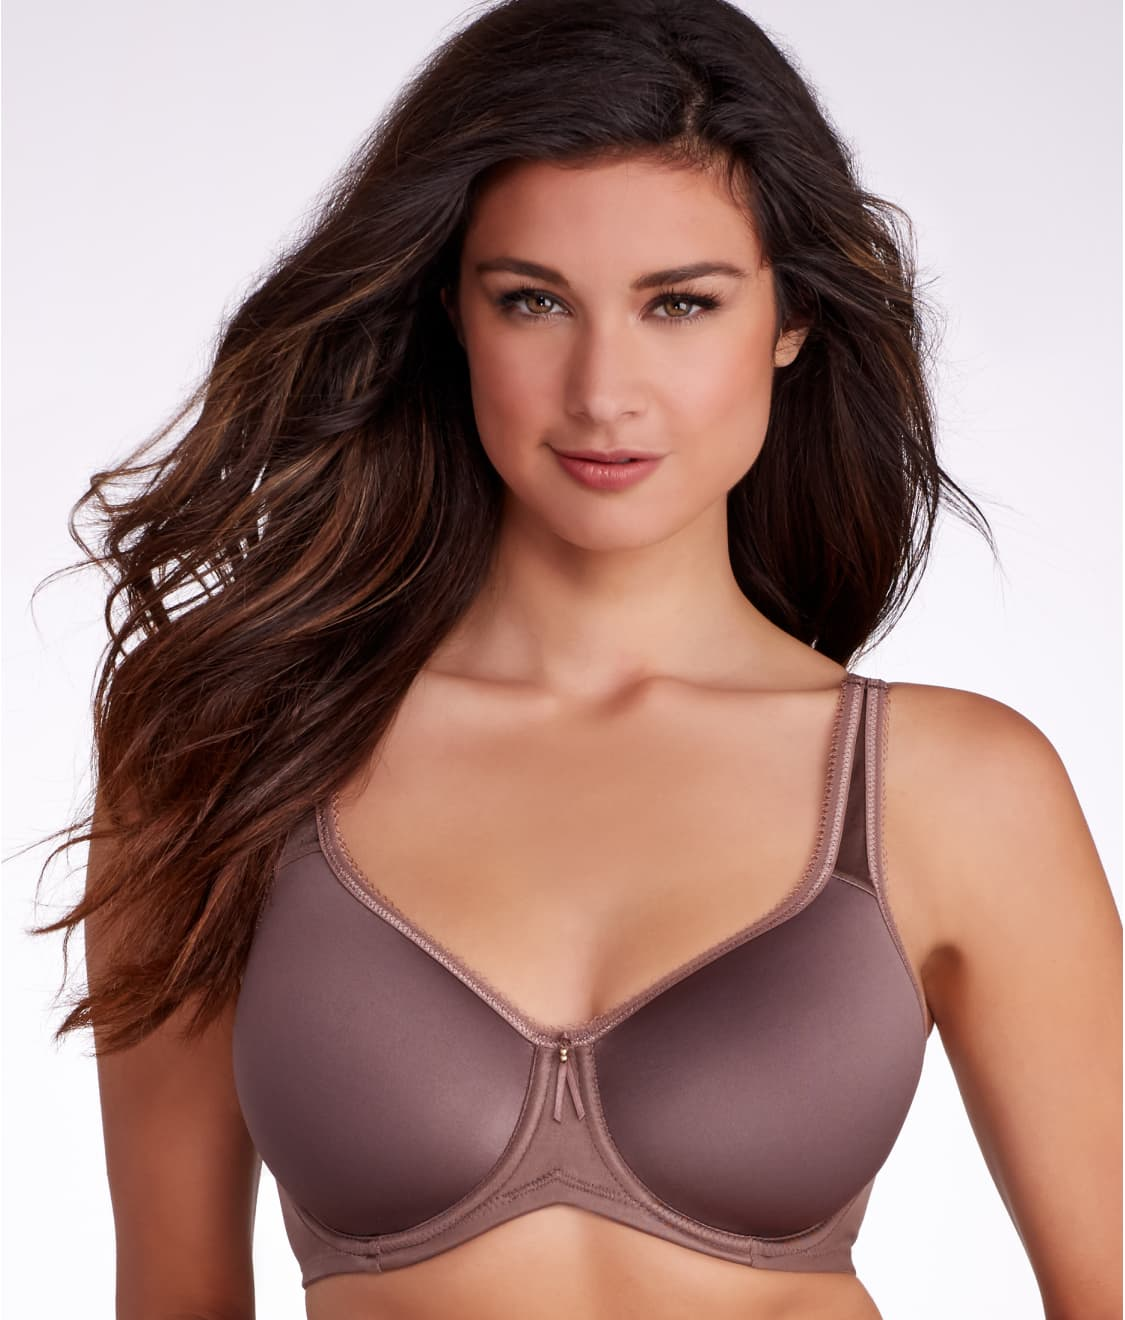 852e706c83 See Basic Beauty T-Shirt Bra in Deep Taupe